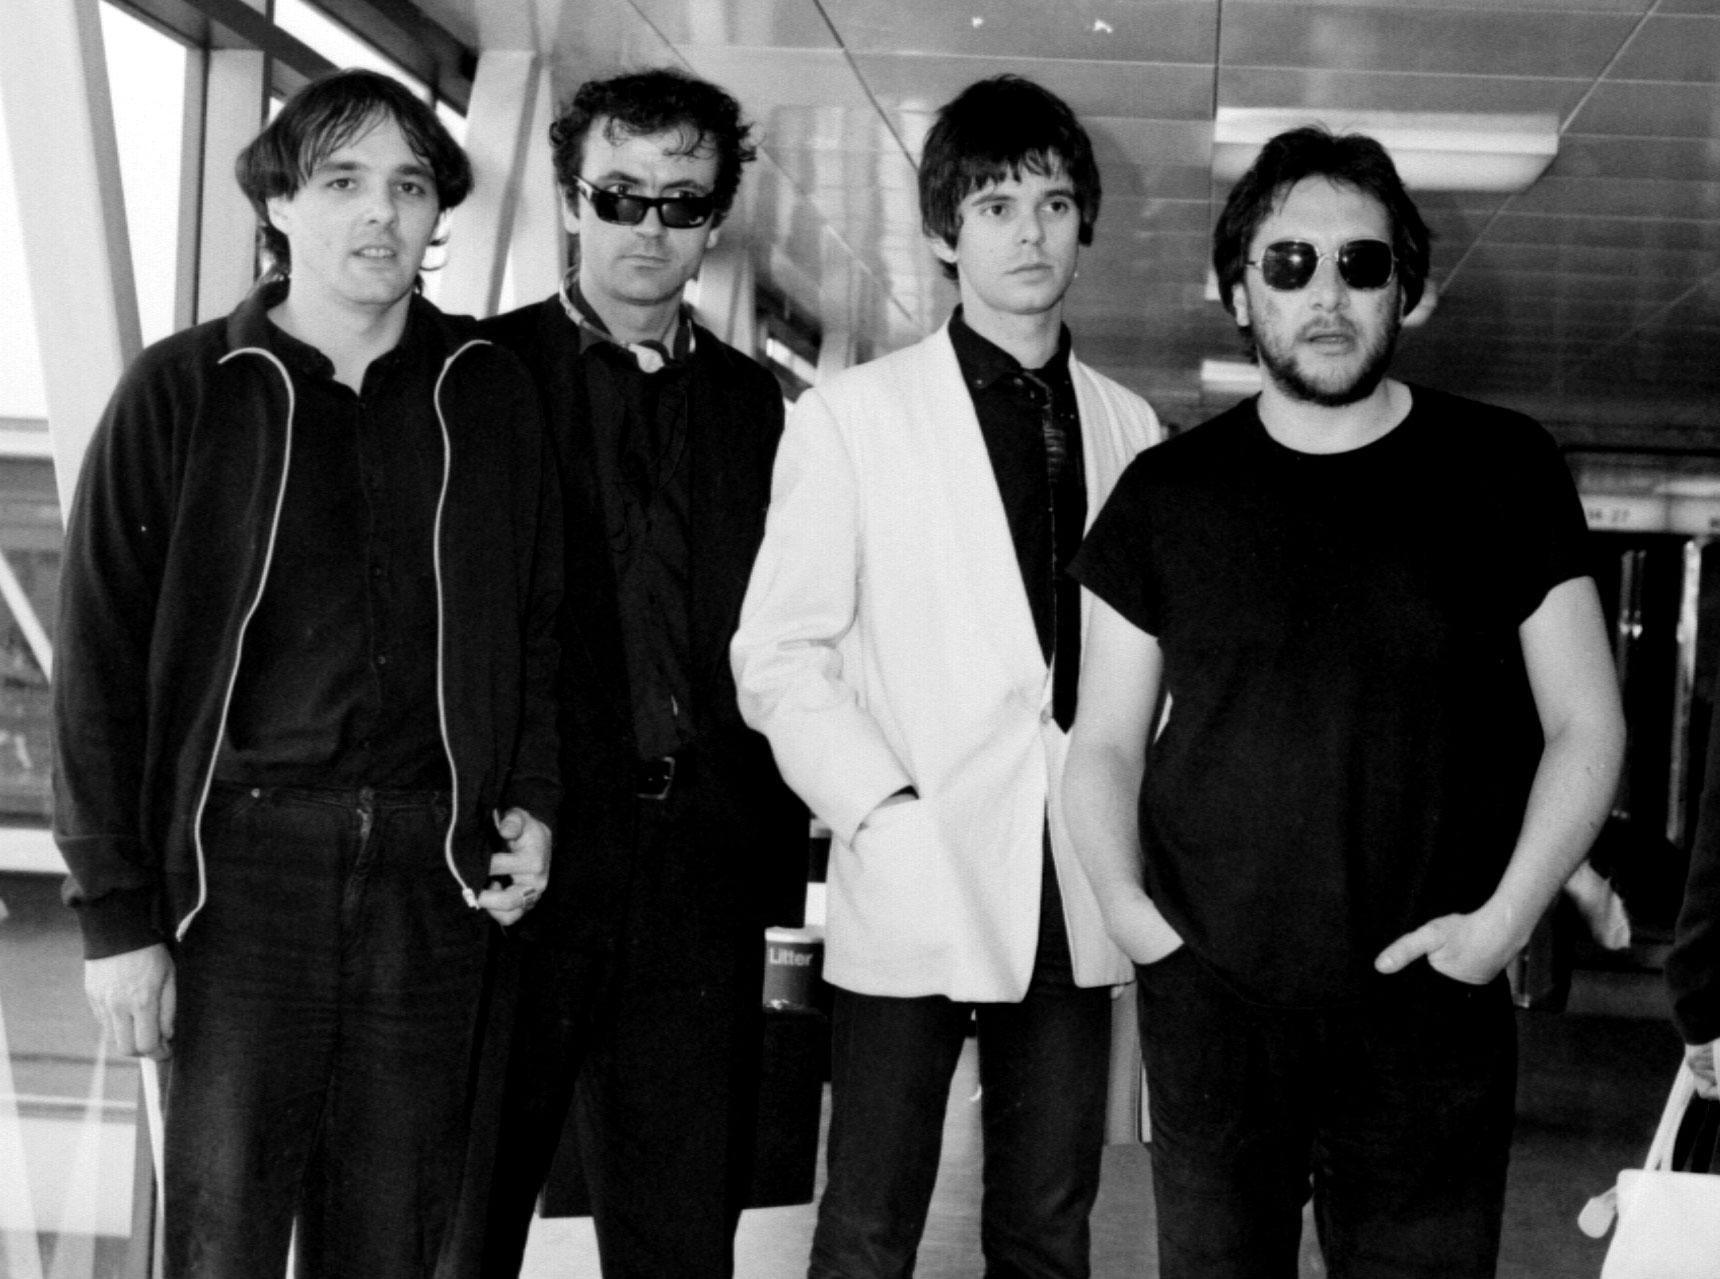 Brighton born Stranglers keyboardist dies of COVID-19